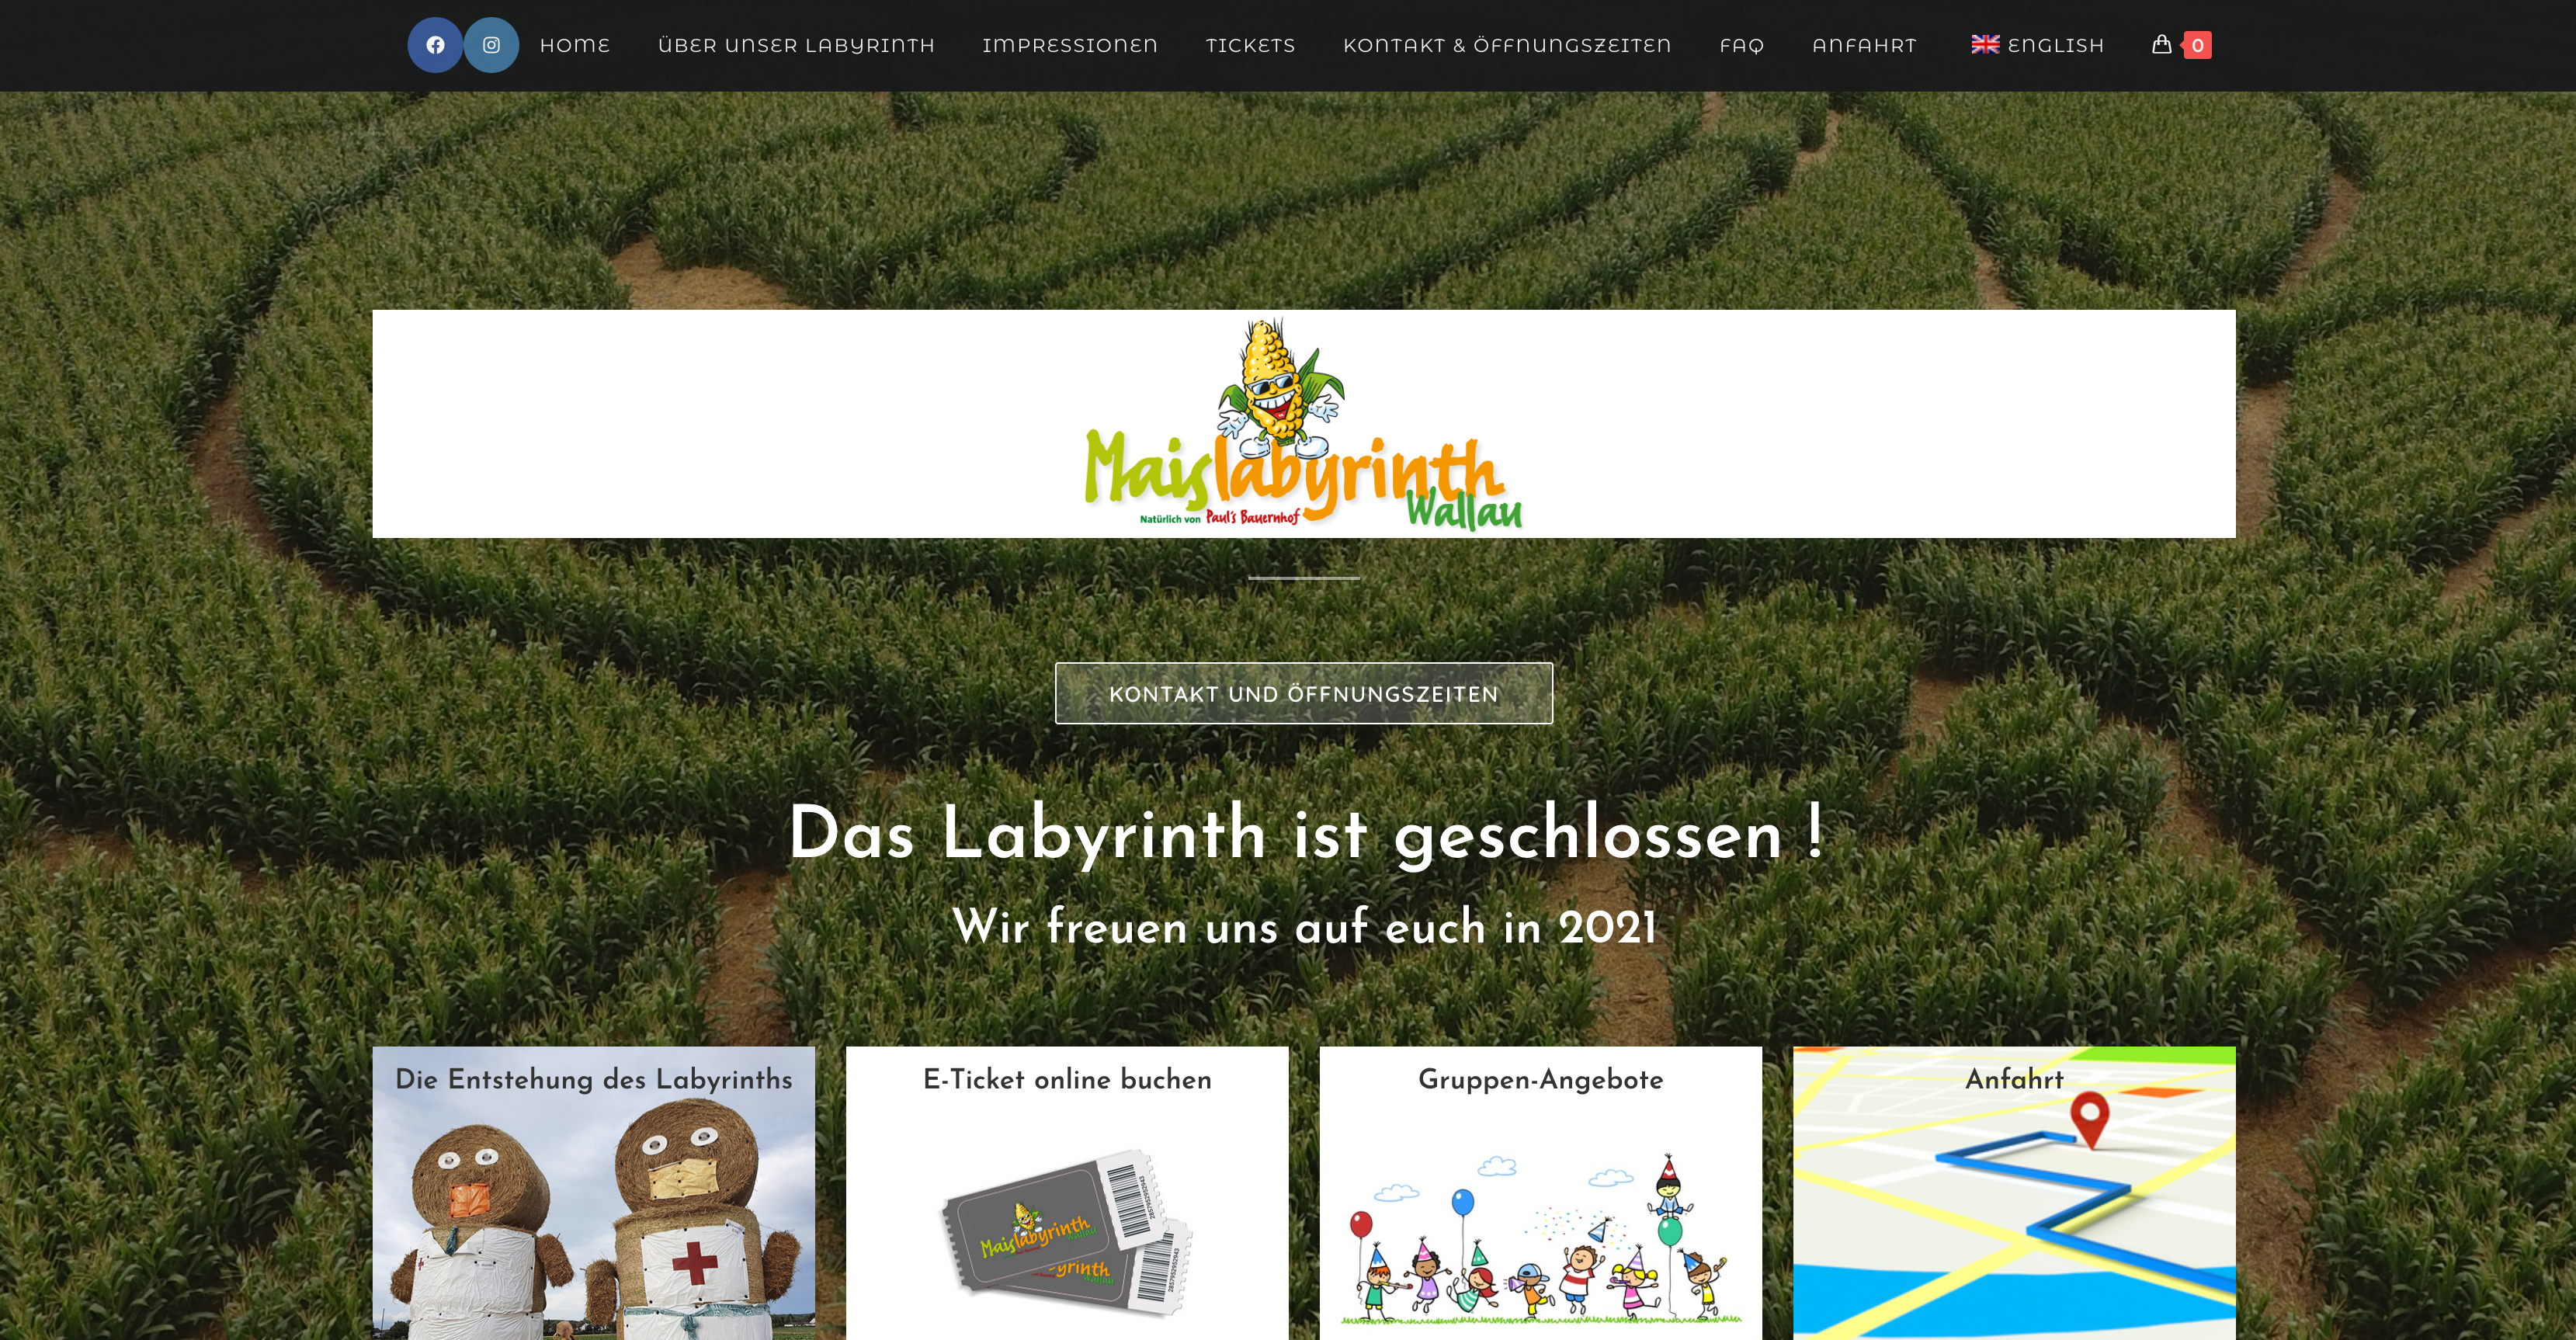 Maislabyrinth – Wallau – Ticketsystem & Shop